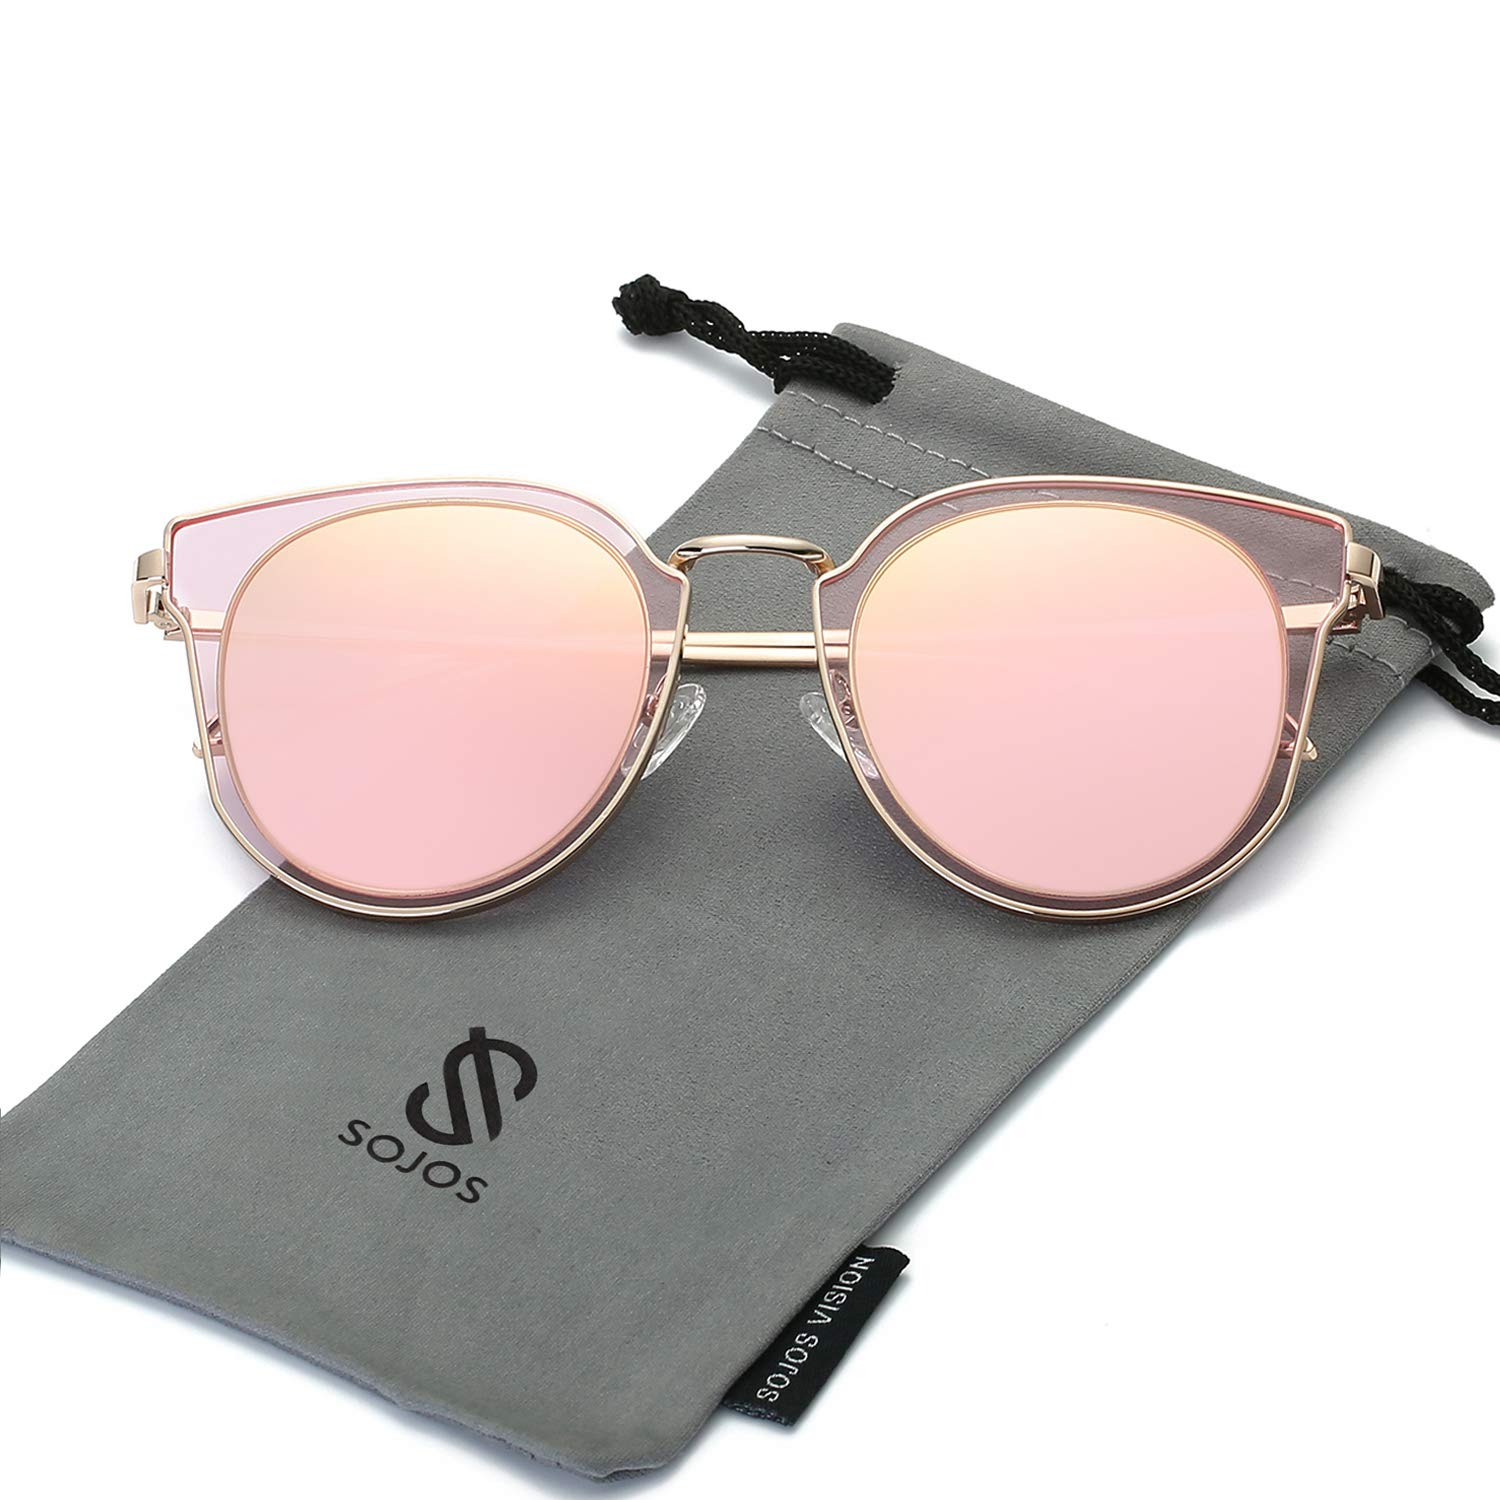 ویکالا · خرید  اصل اورجینال · خرید از آمازون · SOJOS Fashion Polarized Sunglasses for Women UV400 Mirrored Lens SJ1057 (C02 Rose Gold Frame/Pink Mirrored Polarized Lens, 53) wekala · ویکالا